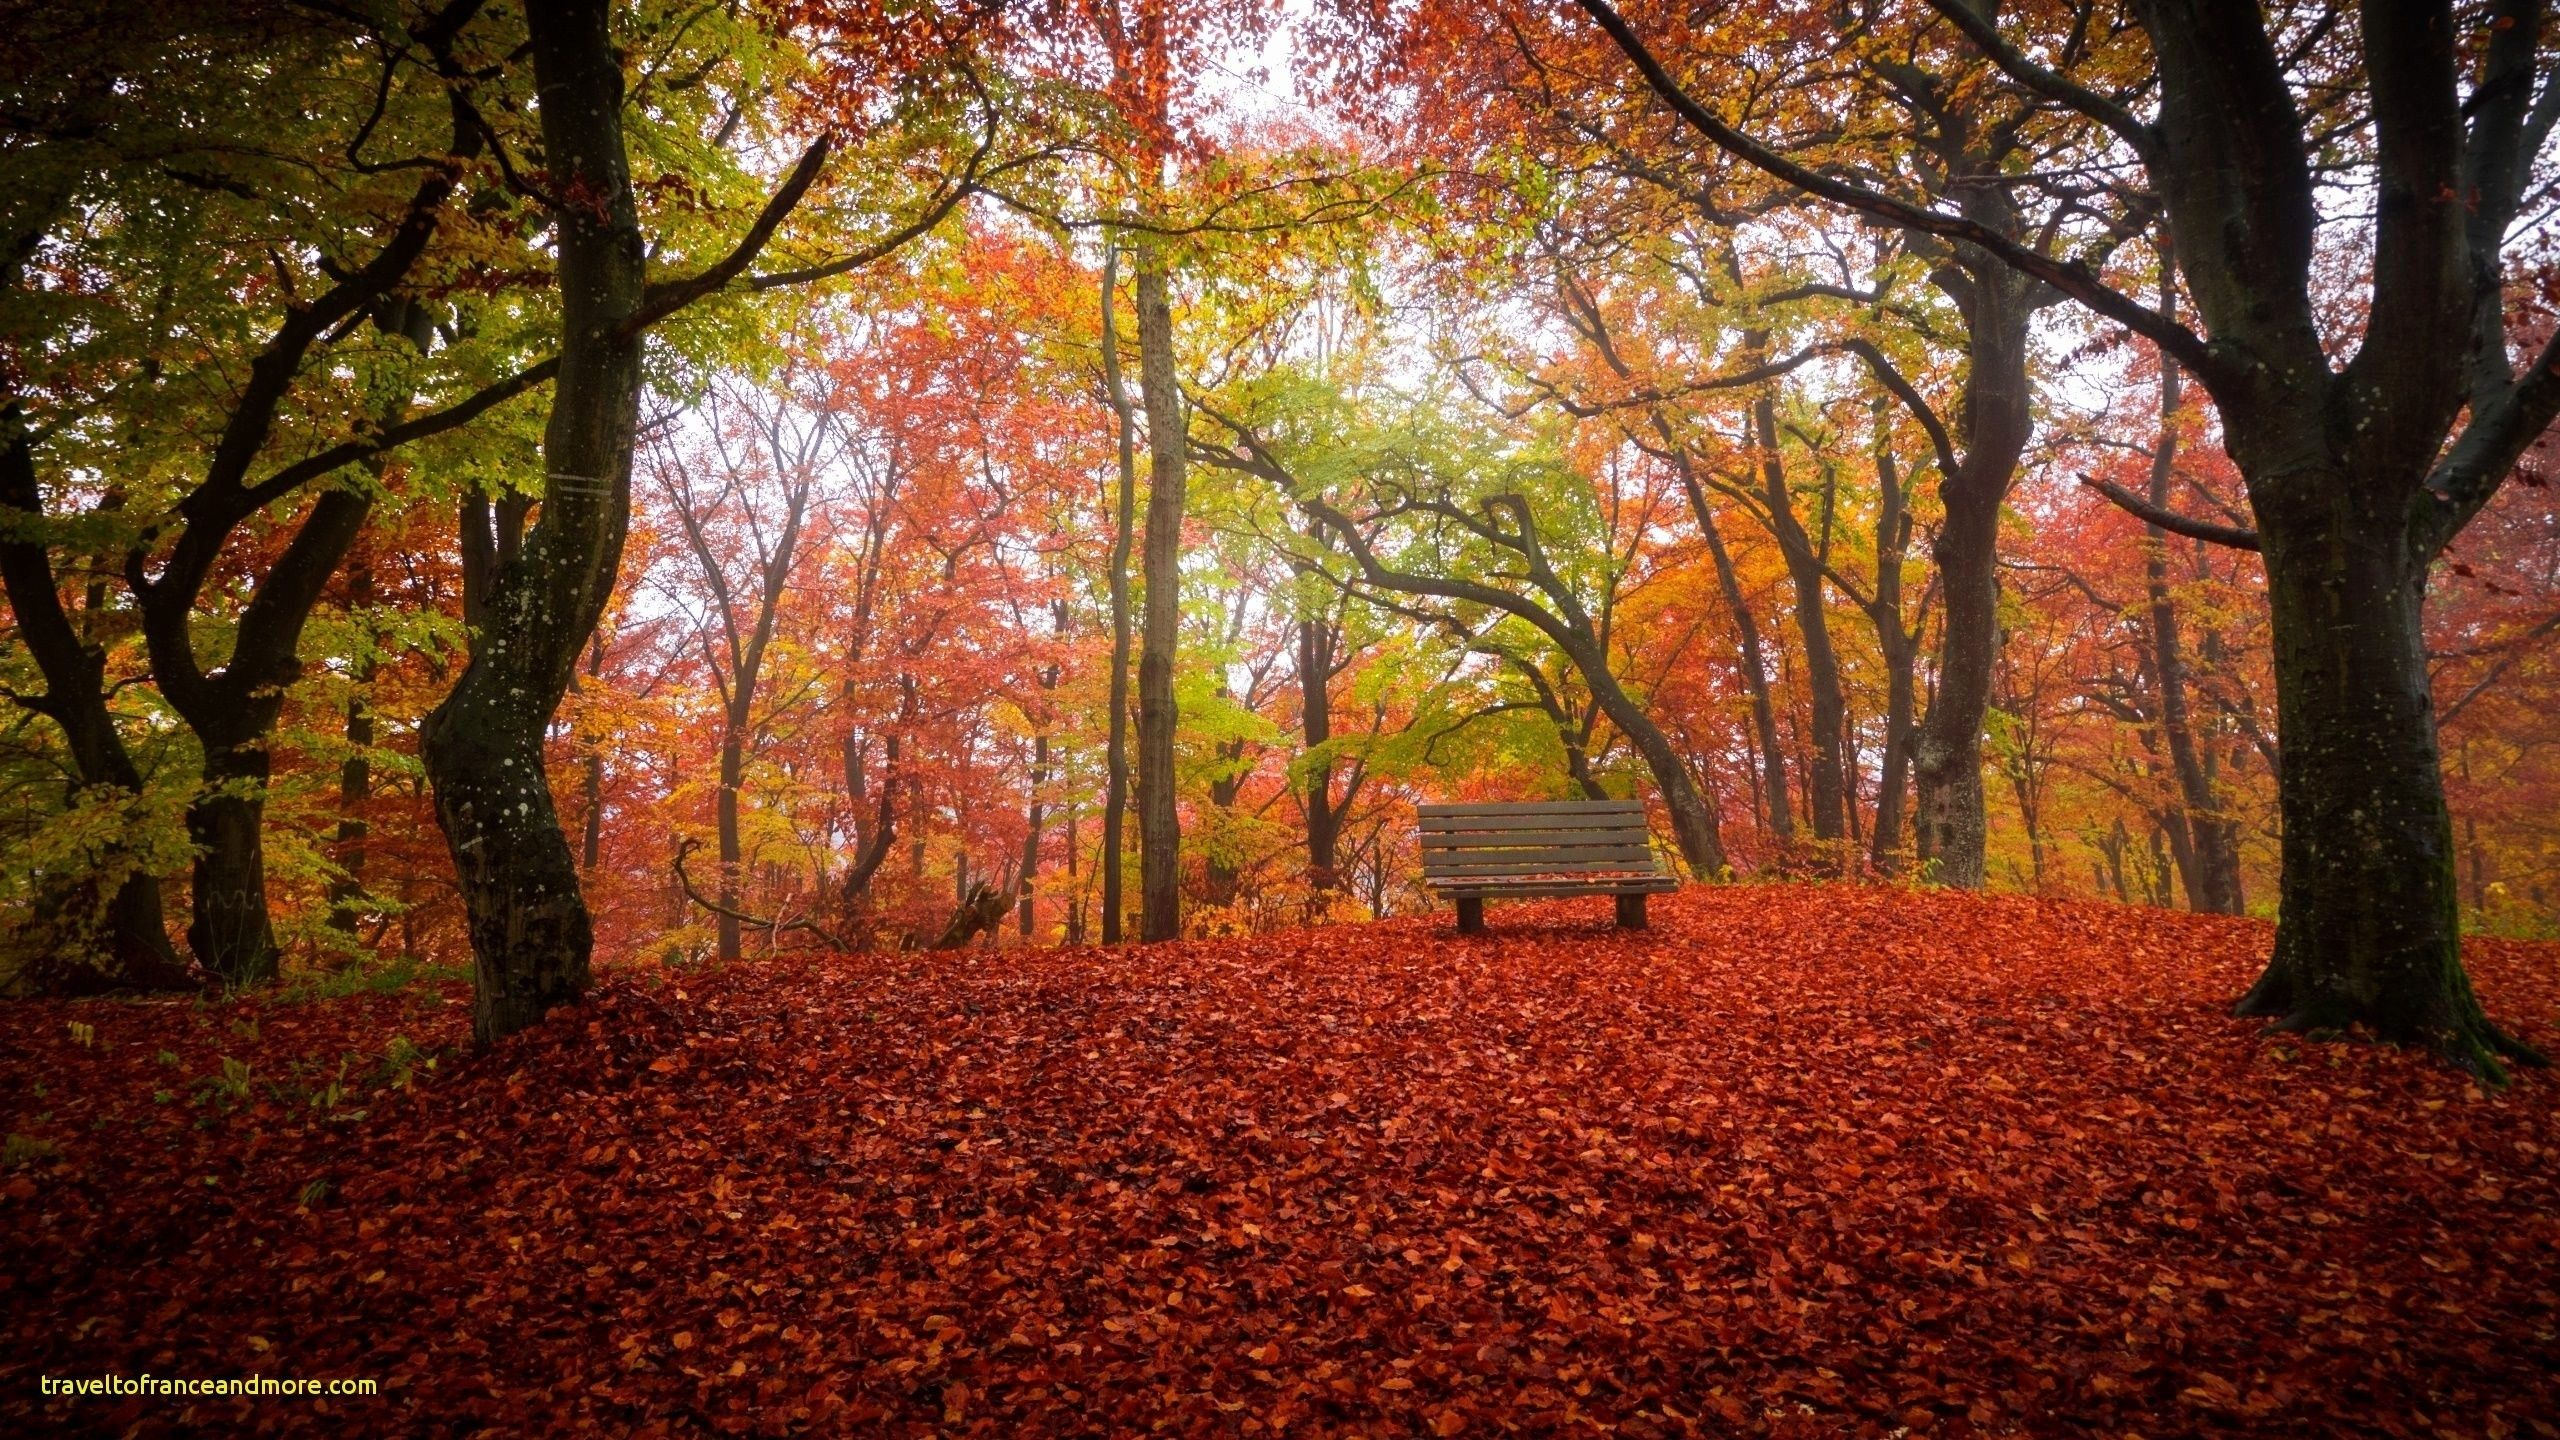 Best Of Free Autumn Desktop Wallpaper Downloads Latar Belakang Latar Belakang Animasi Musim Gugur